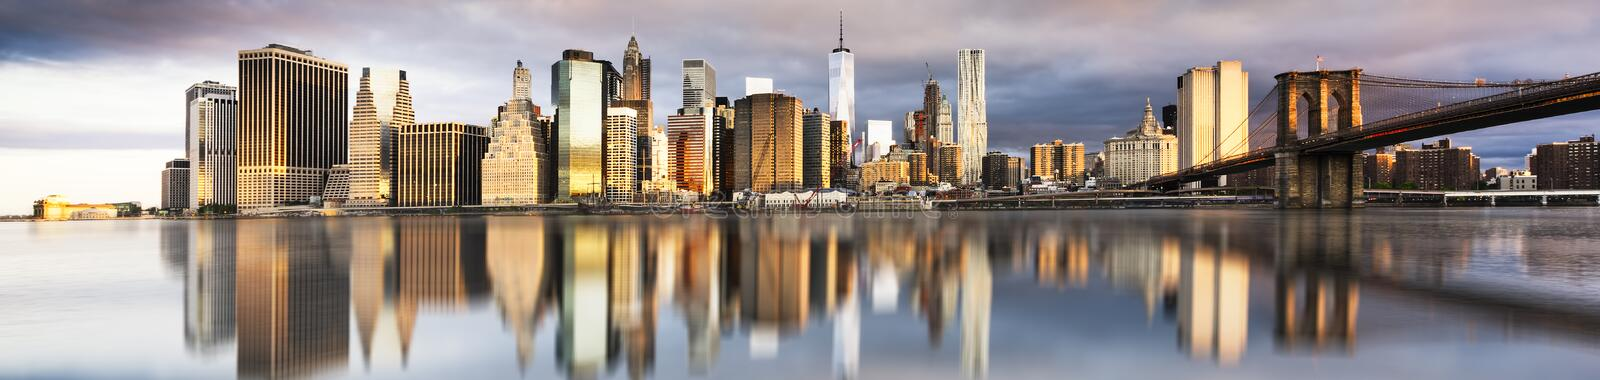 New York City - nascer do sol bonito imagem de stock royalty free